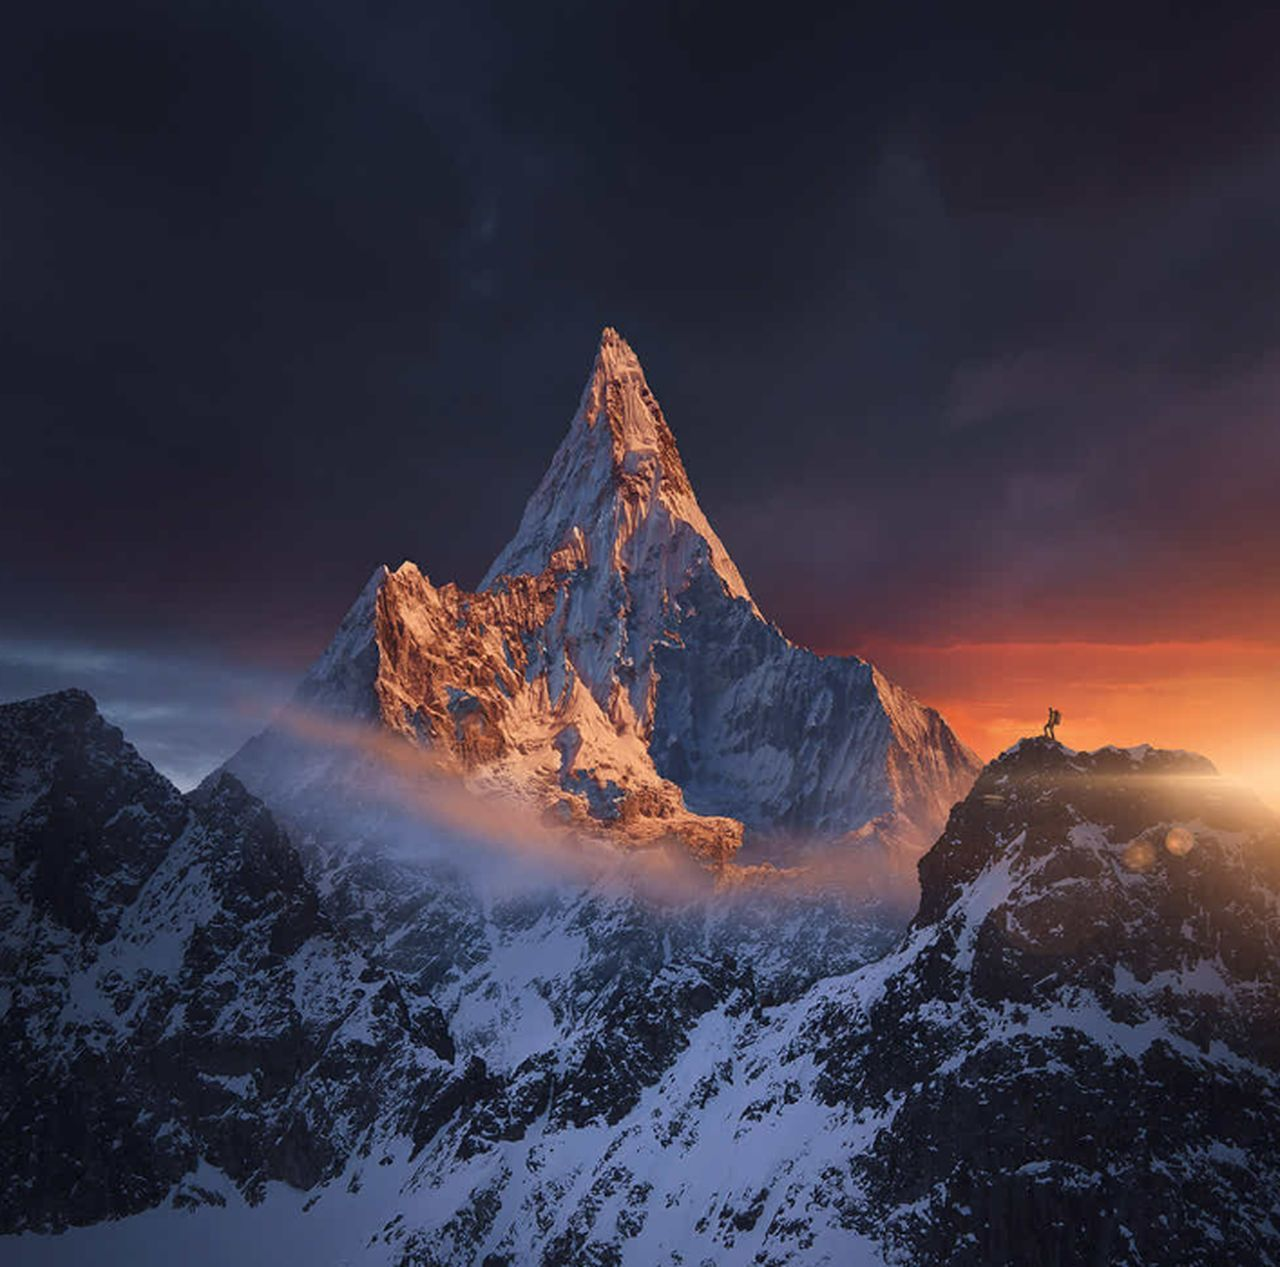 Breathing Space AboveAll Snow Mountain Peak Travel Destinations No People Onlysky EyeEmNewHere Investing In Quality Of Life